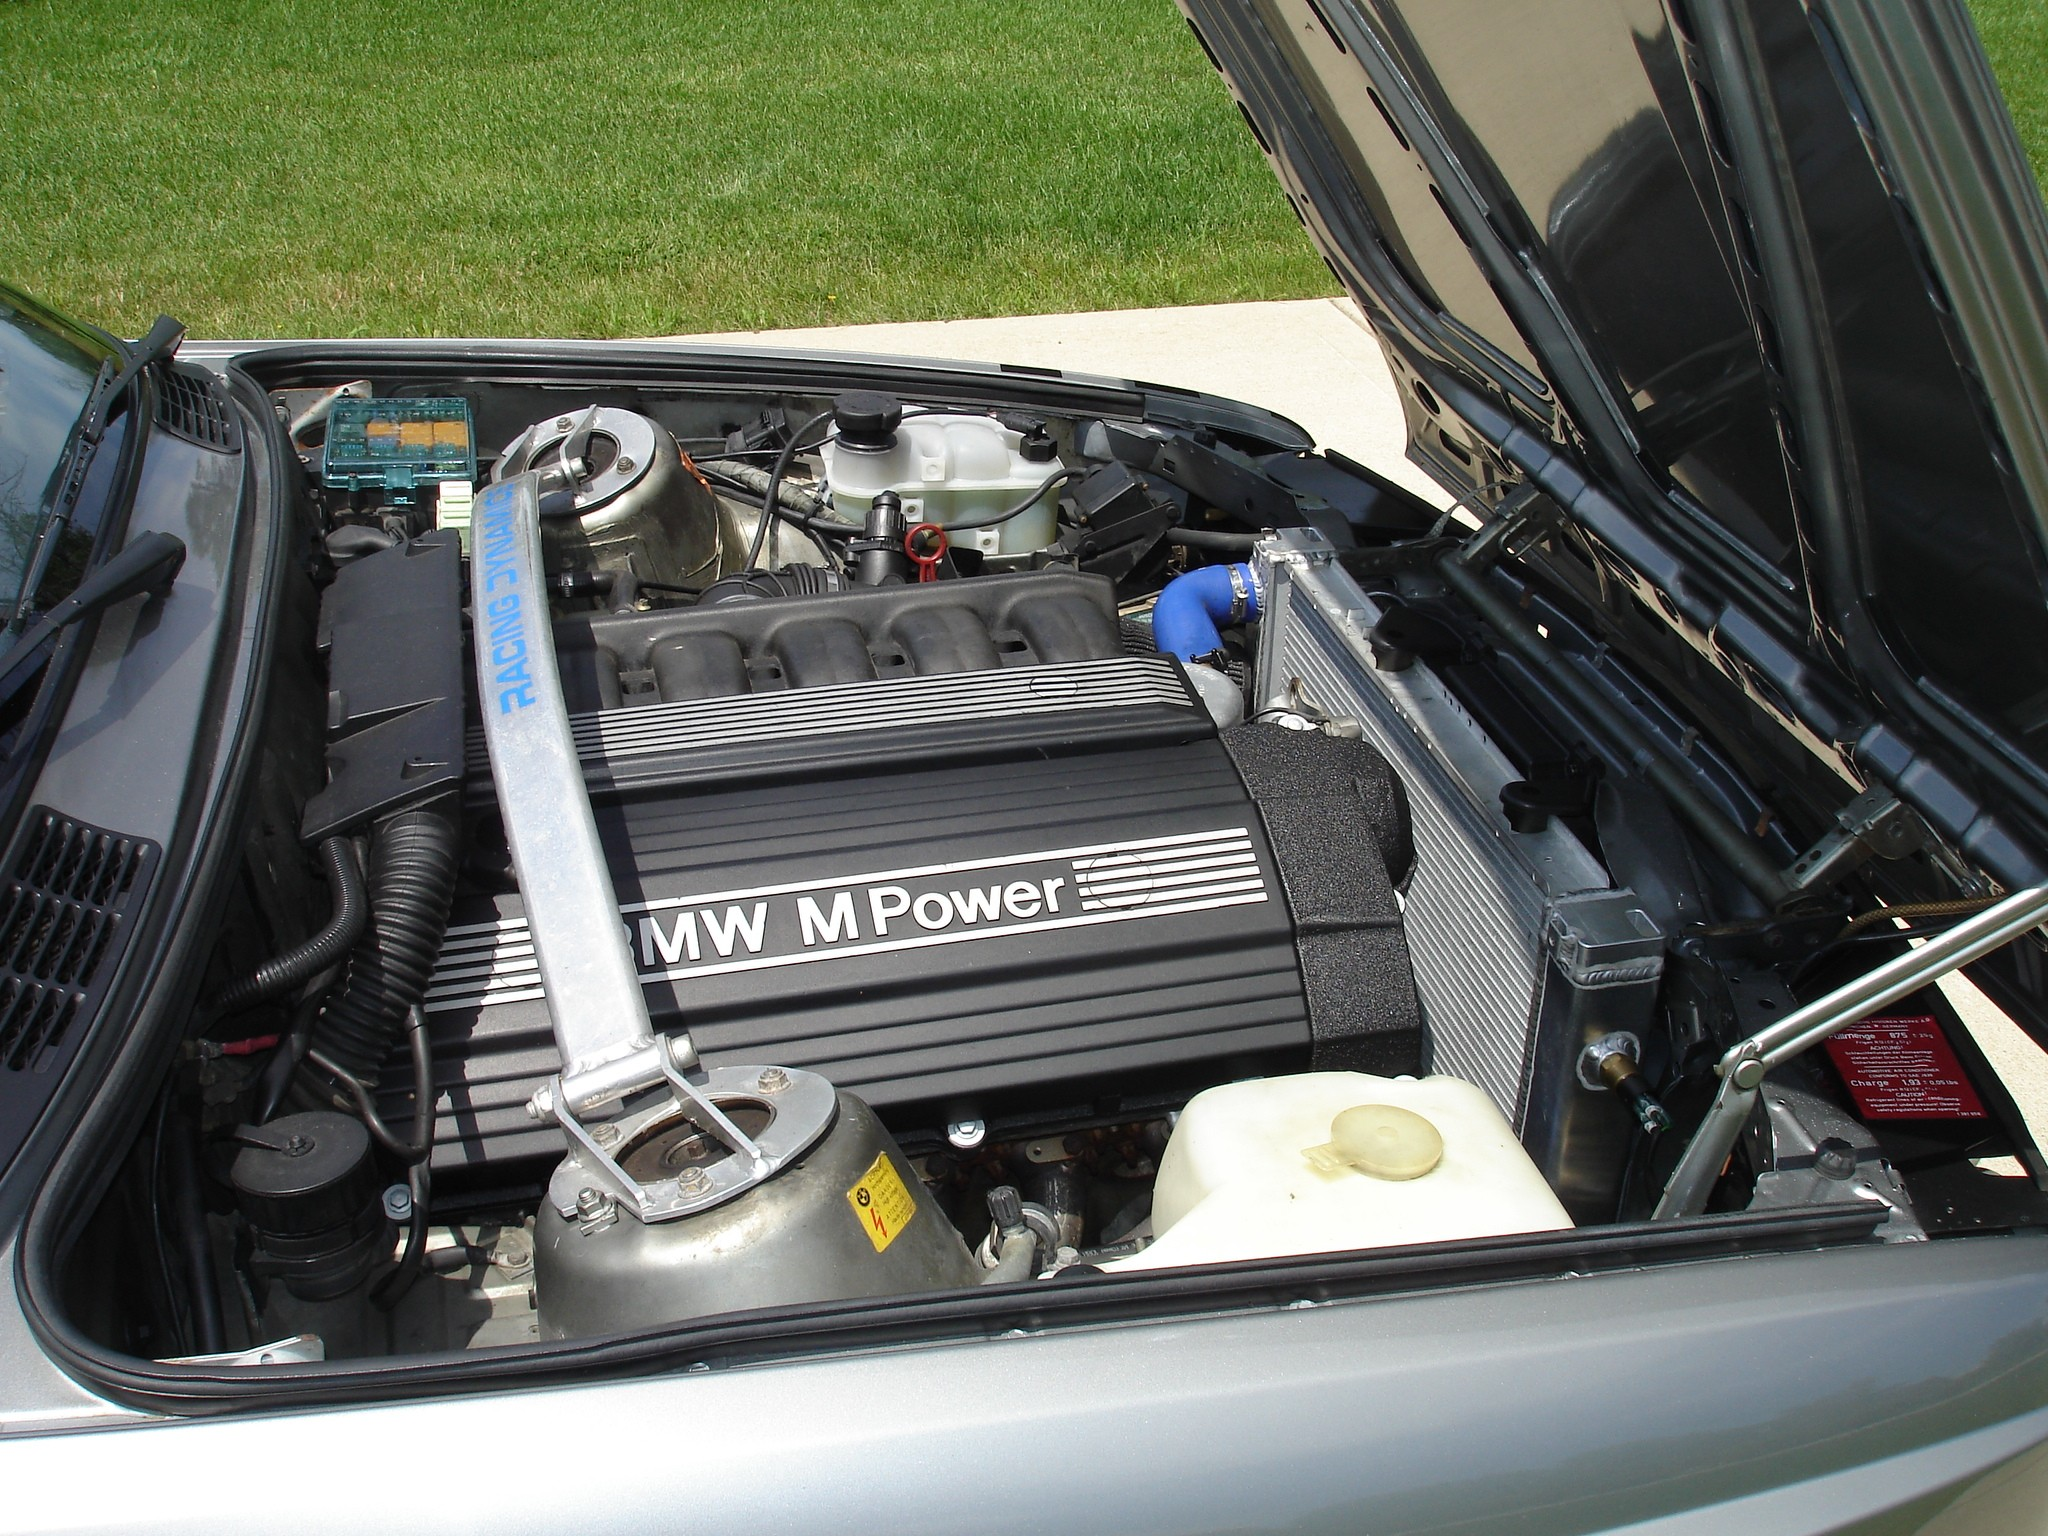 1988 bmw e30 m3 with inline 6 cylinder s52 engine up for. Black Bedroom Furniture Sets. Home Design Ideas